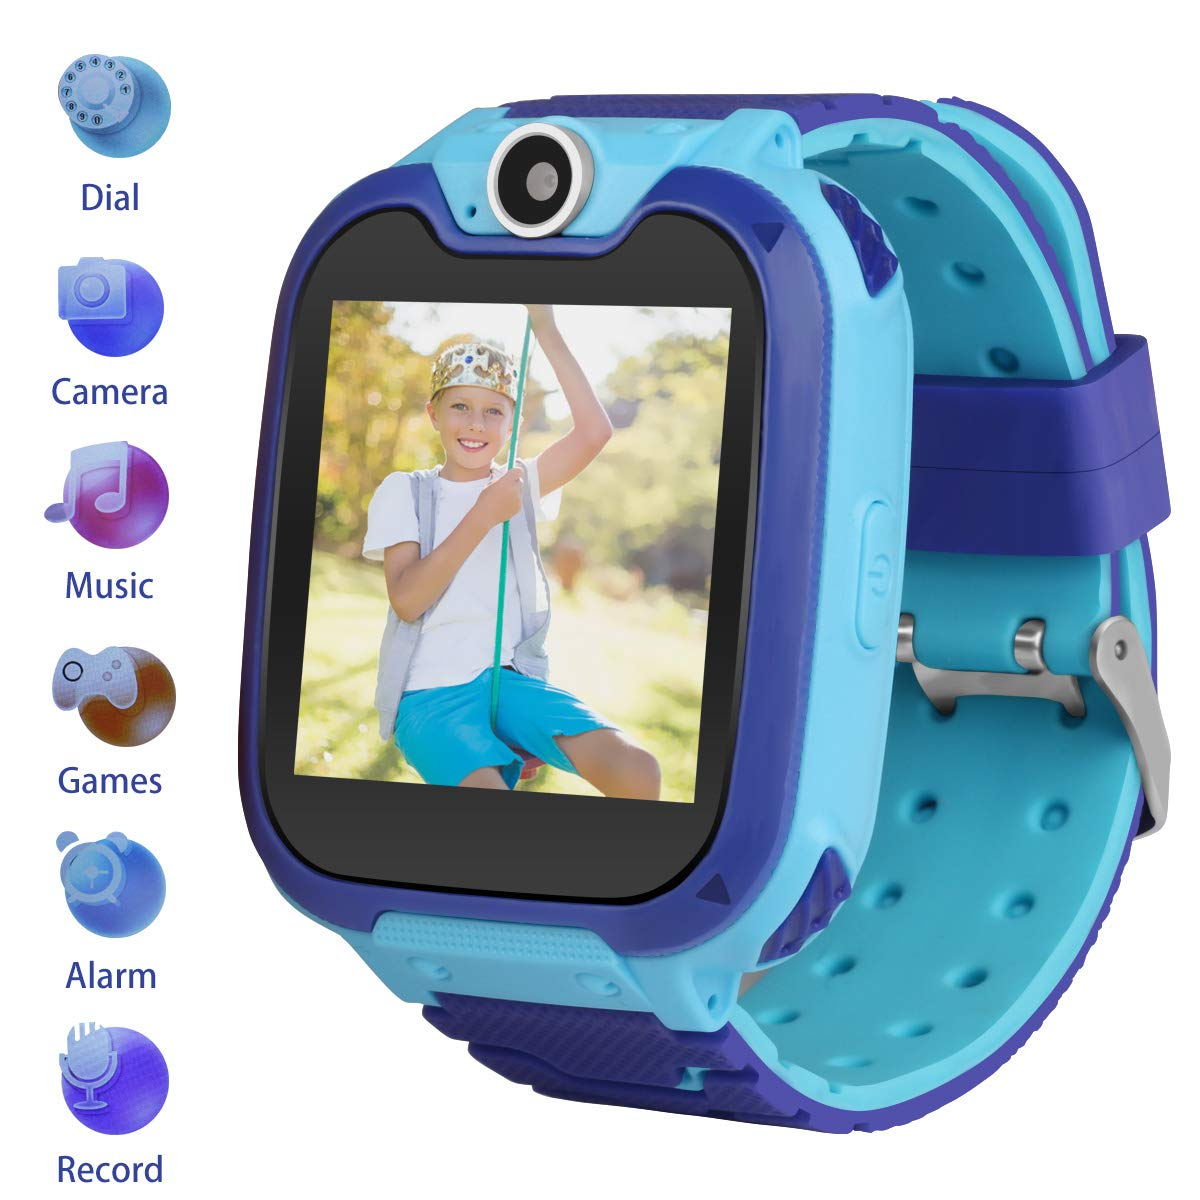 Amazon.com: Reloj inteligente para niños, GPS, LBS, IP68 ...